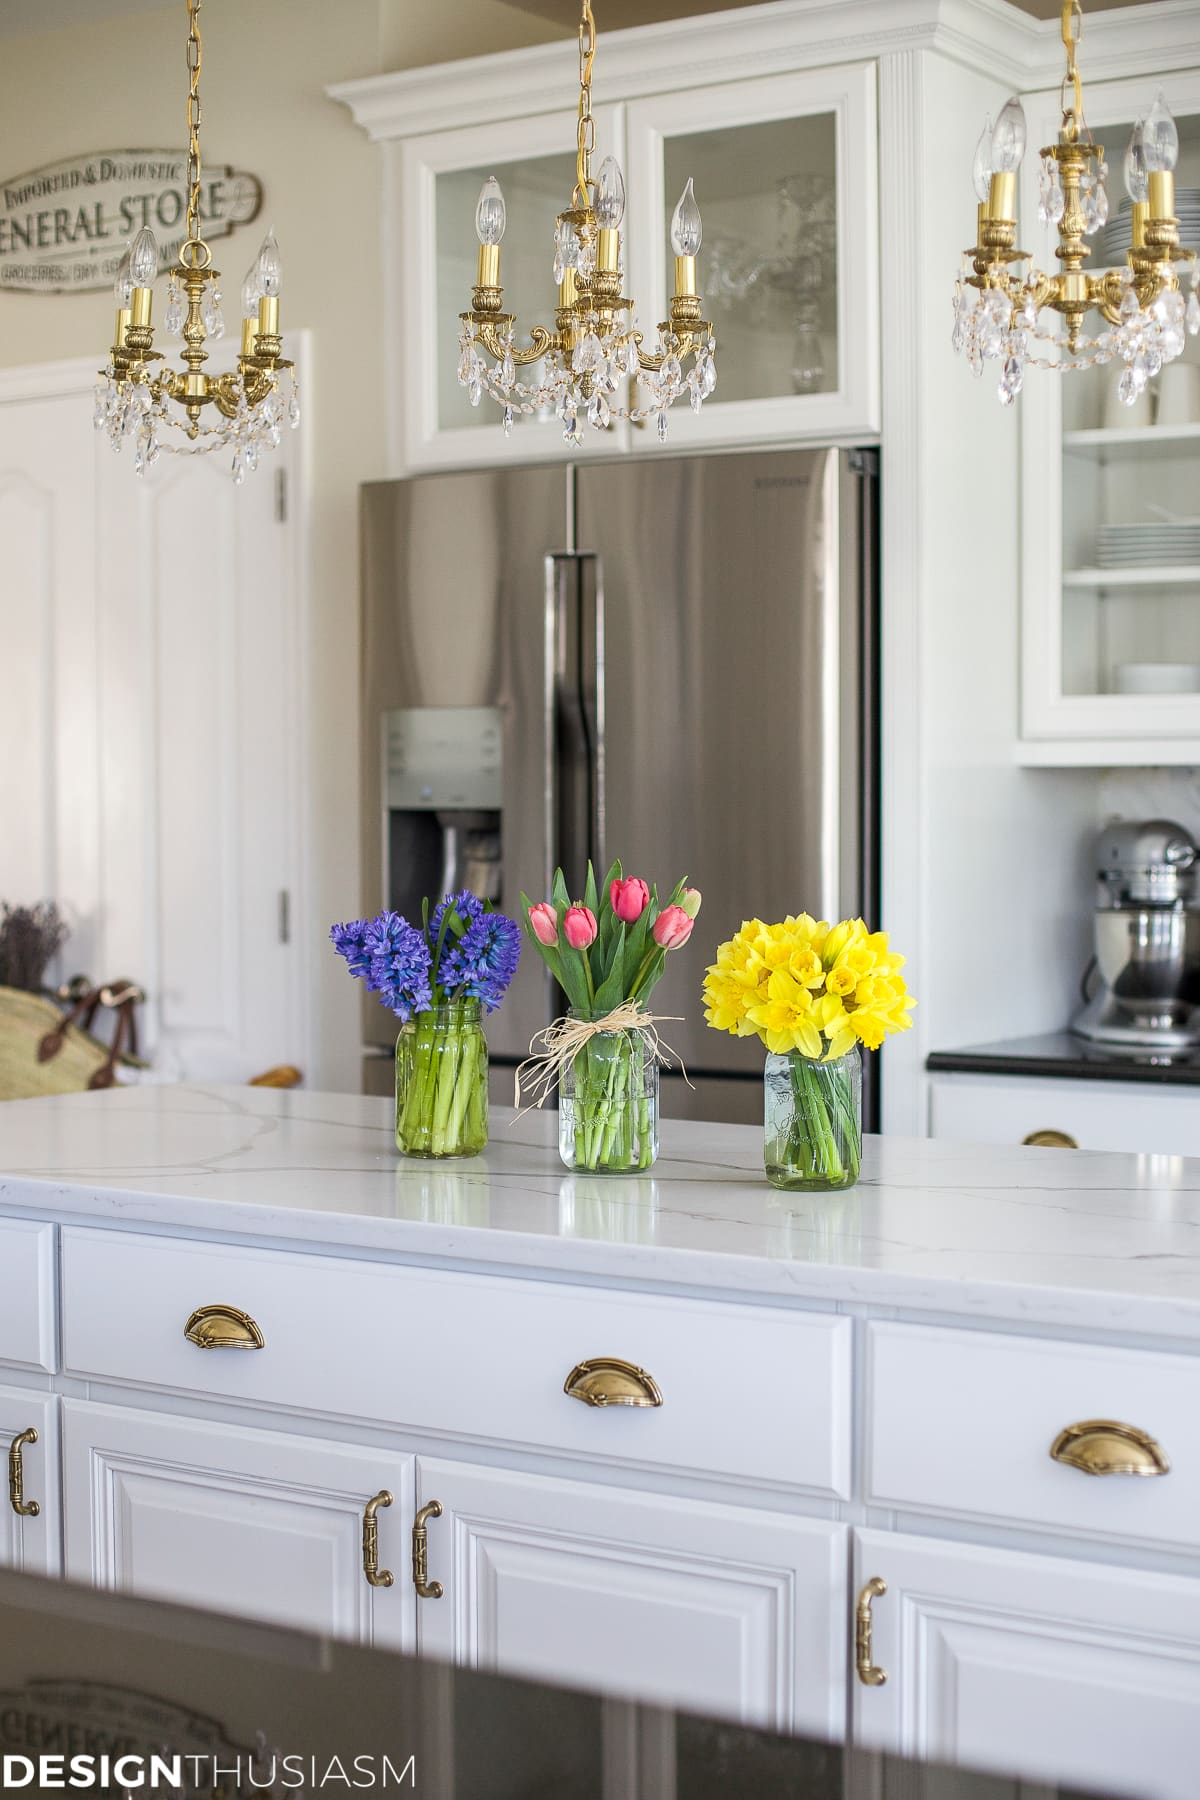 SPRING FARMHOUSE KITCHEN DETAILS